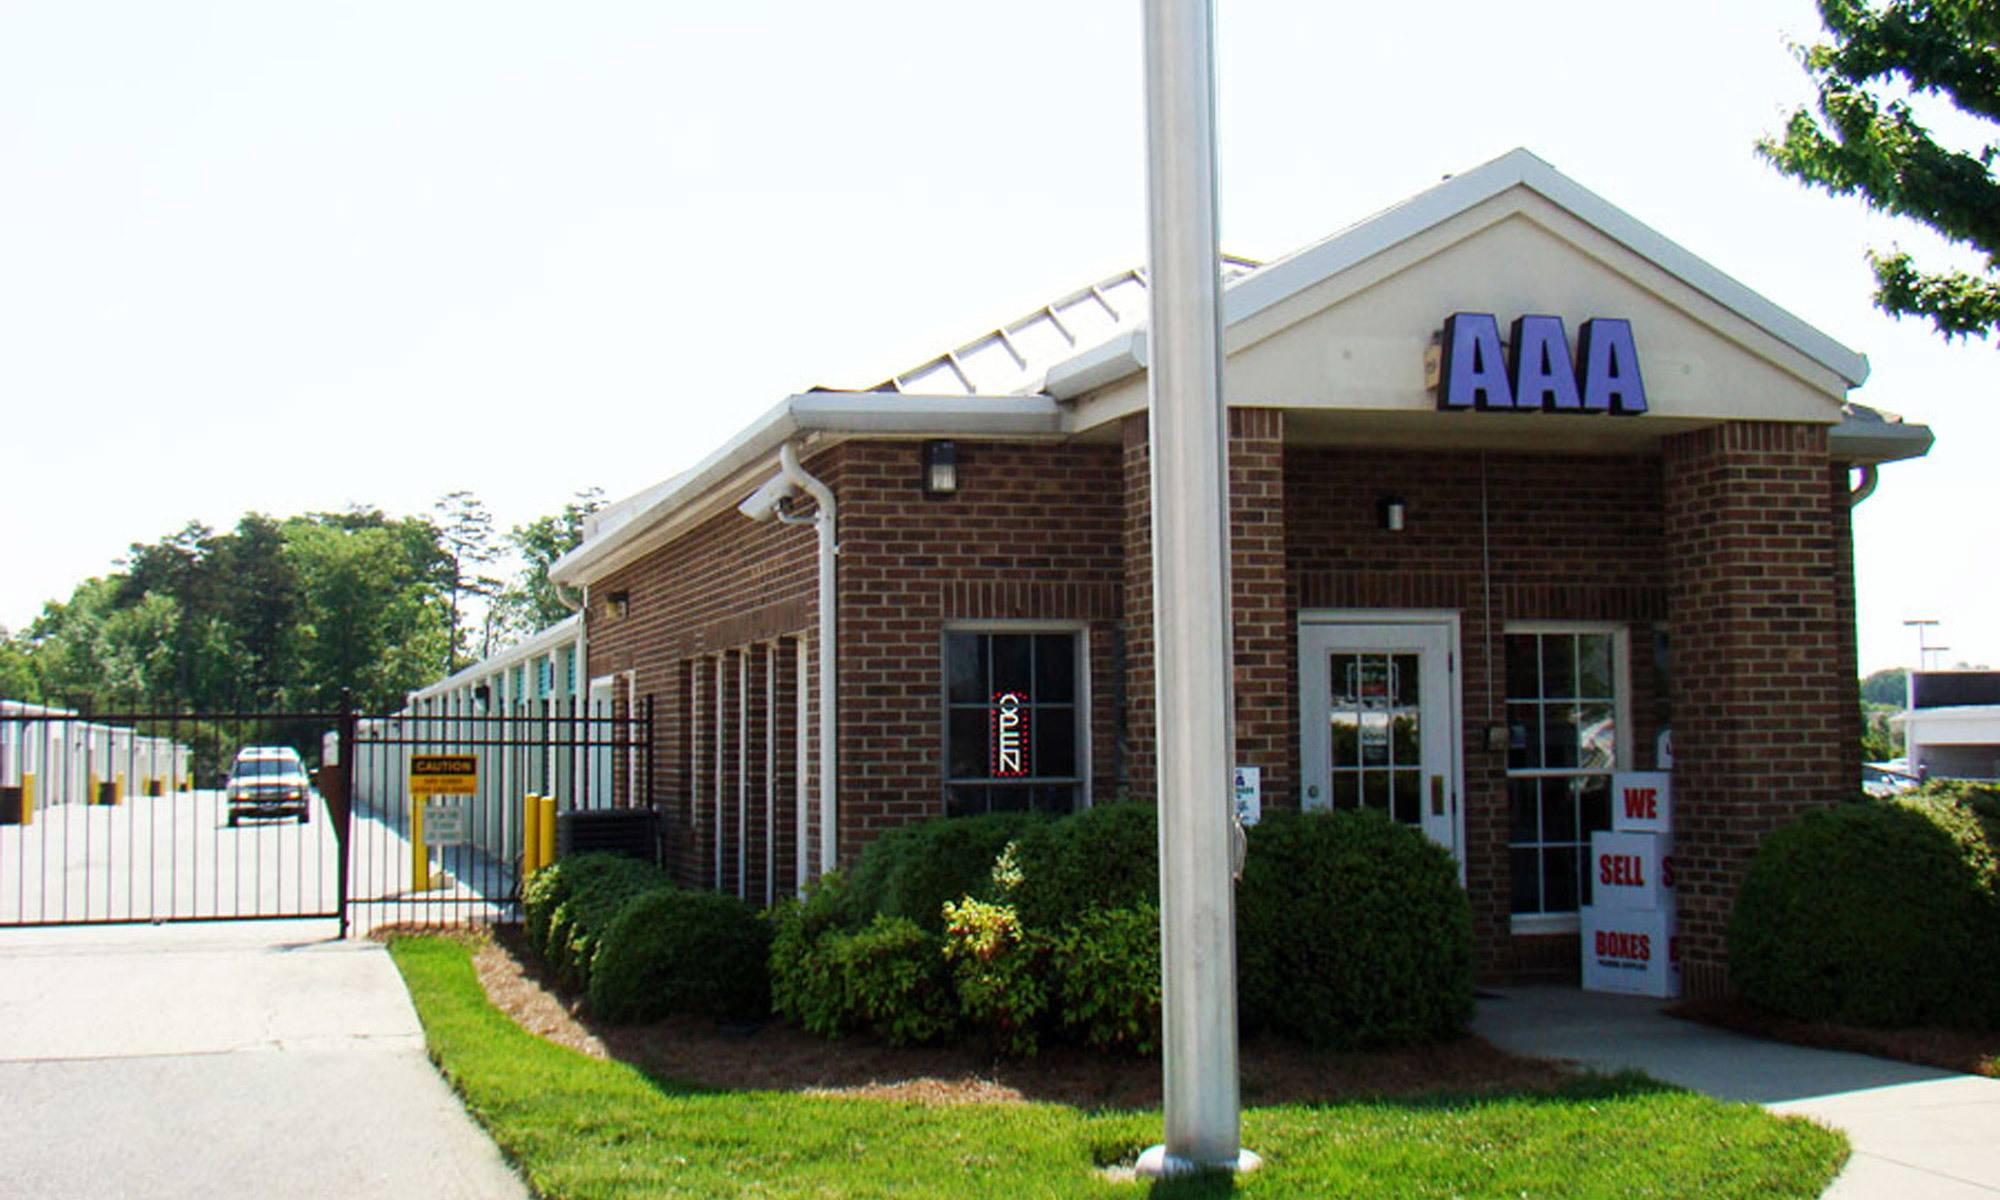 Reliable self storage in Greensboro